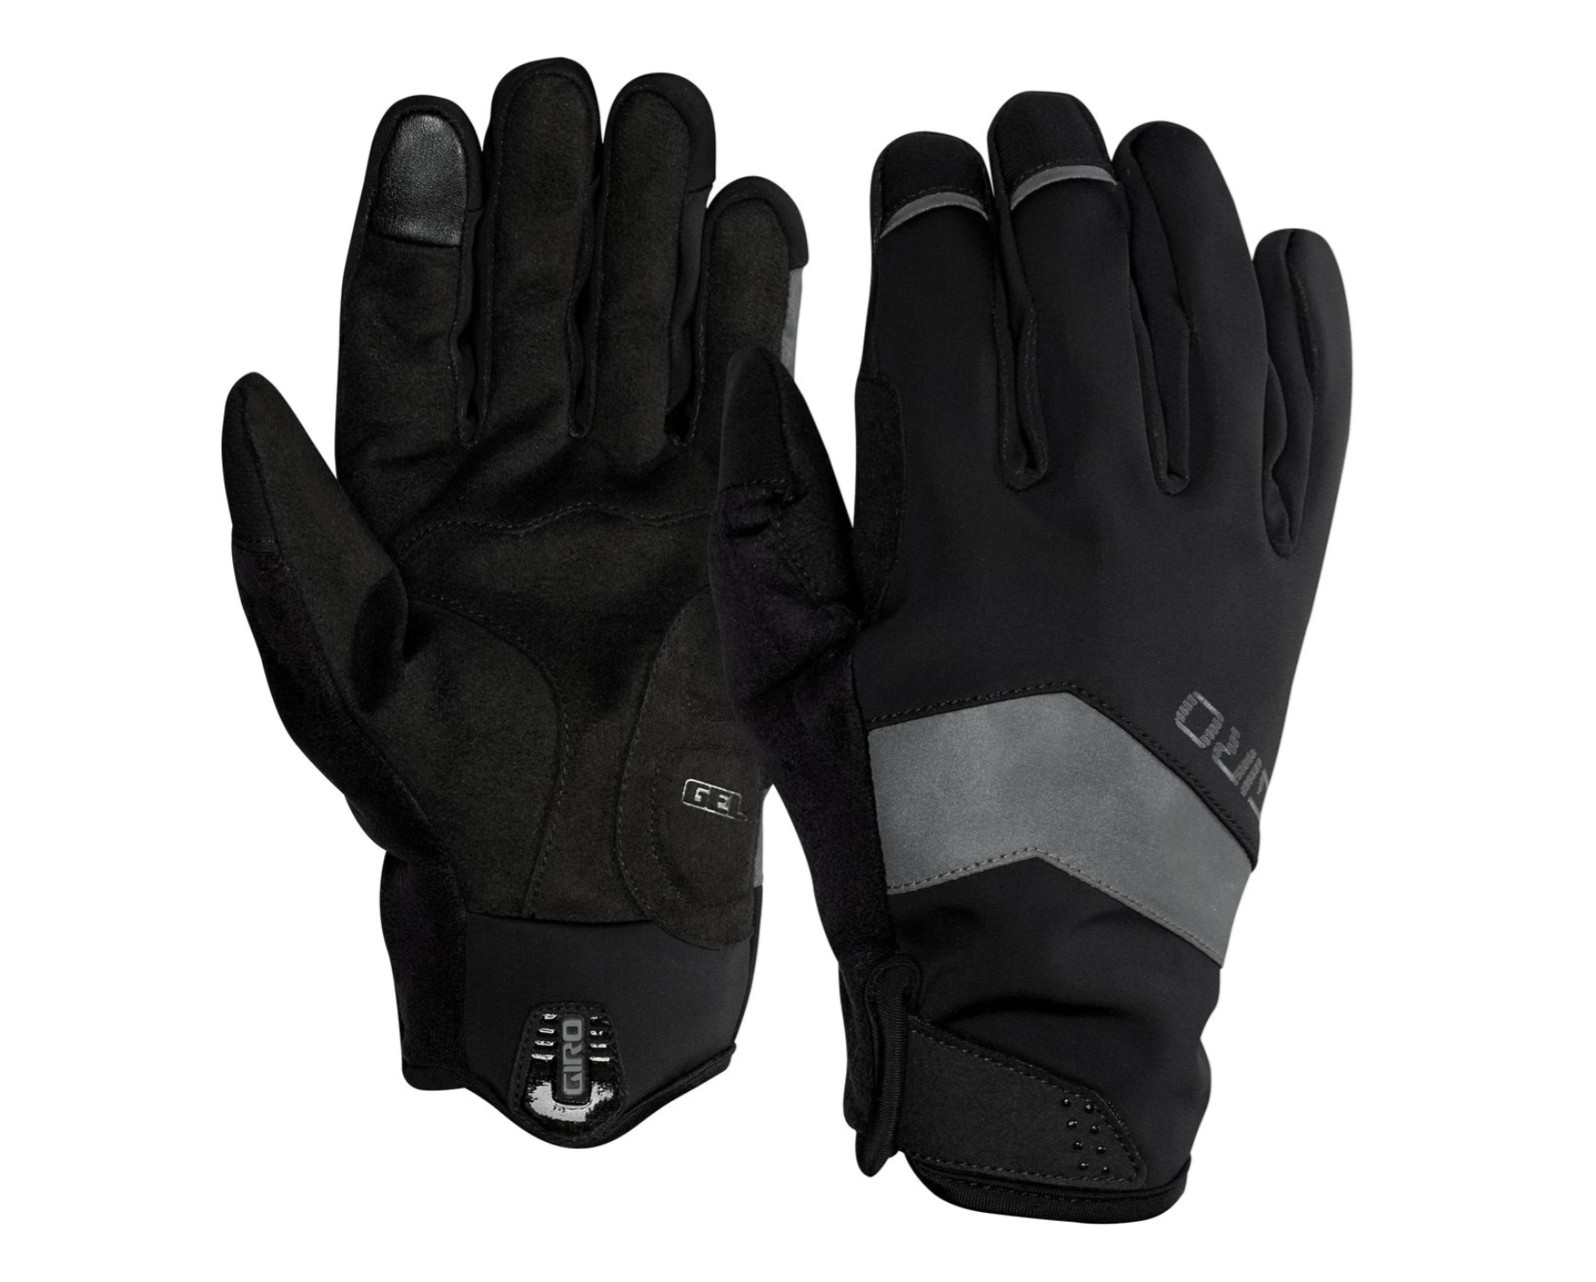 Giro Ambient Winter Glove - black